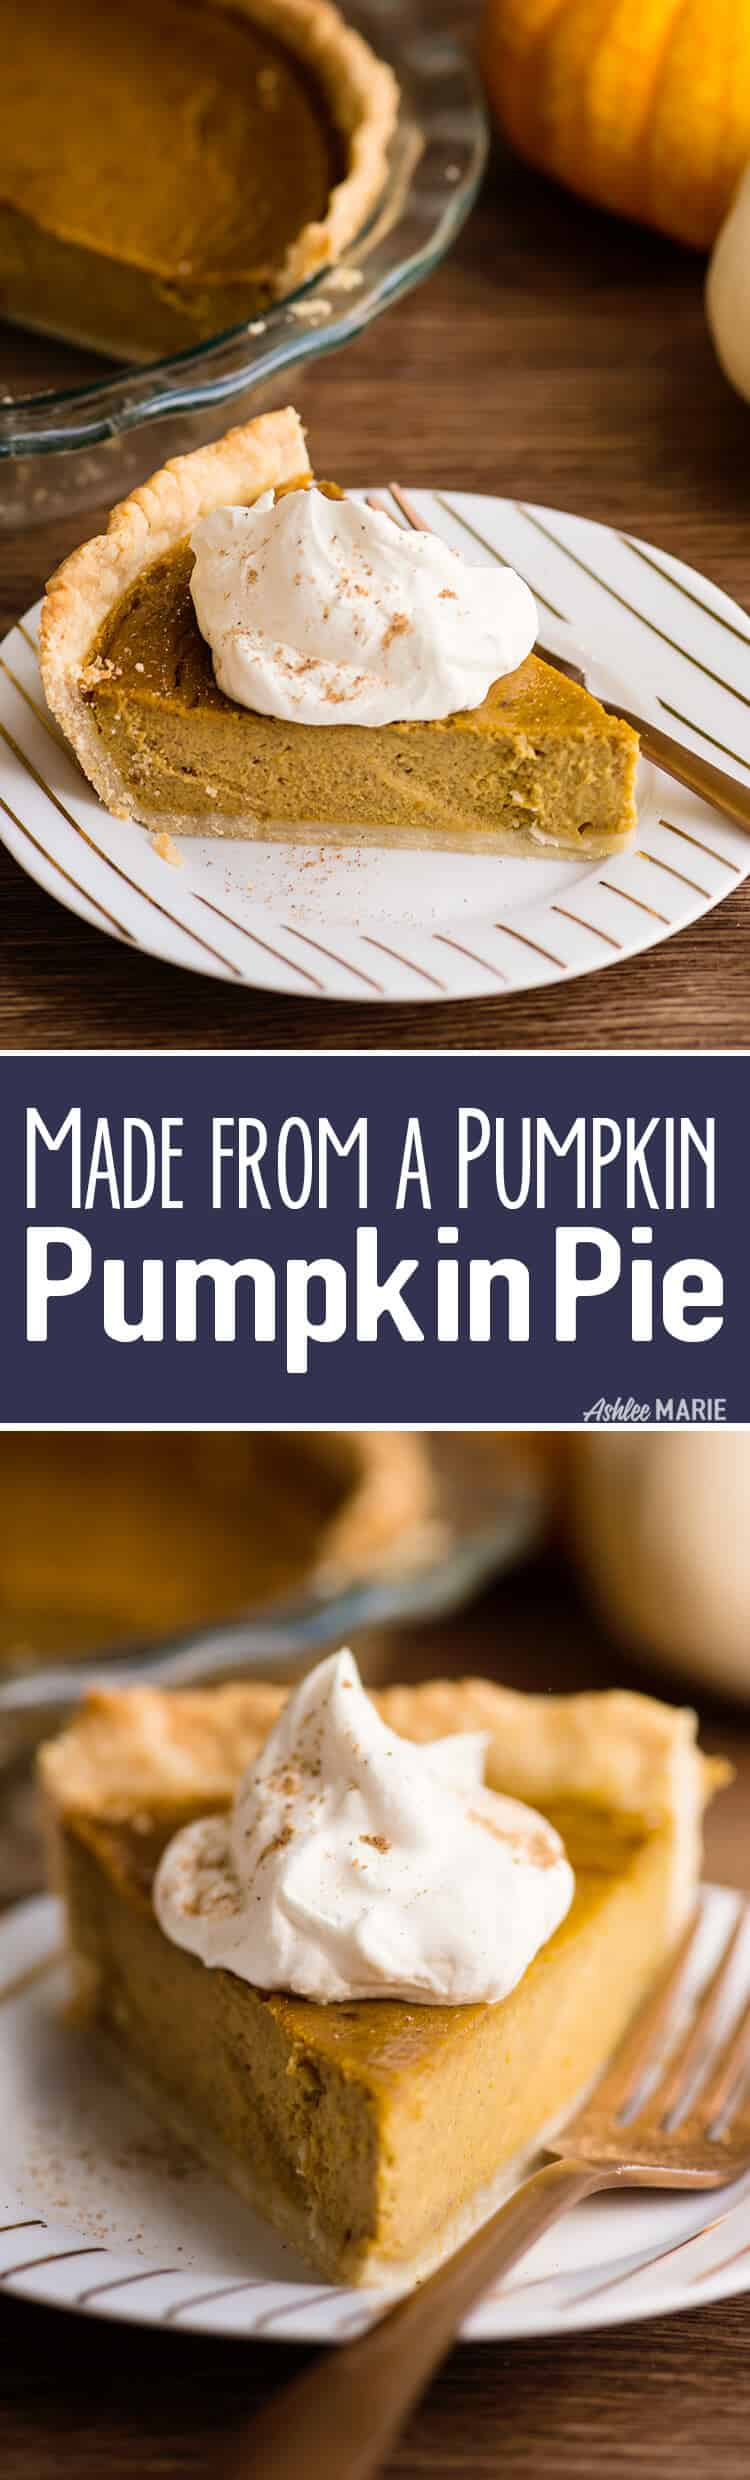 made from a pumpkin - from scratch pumpkin pie recipe and video tutorial